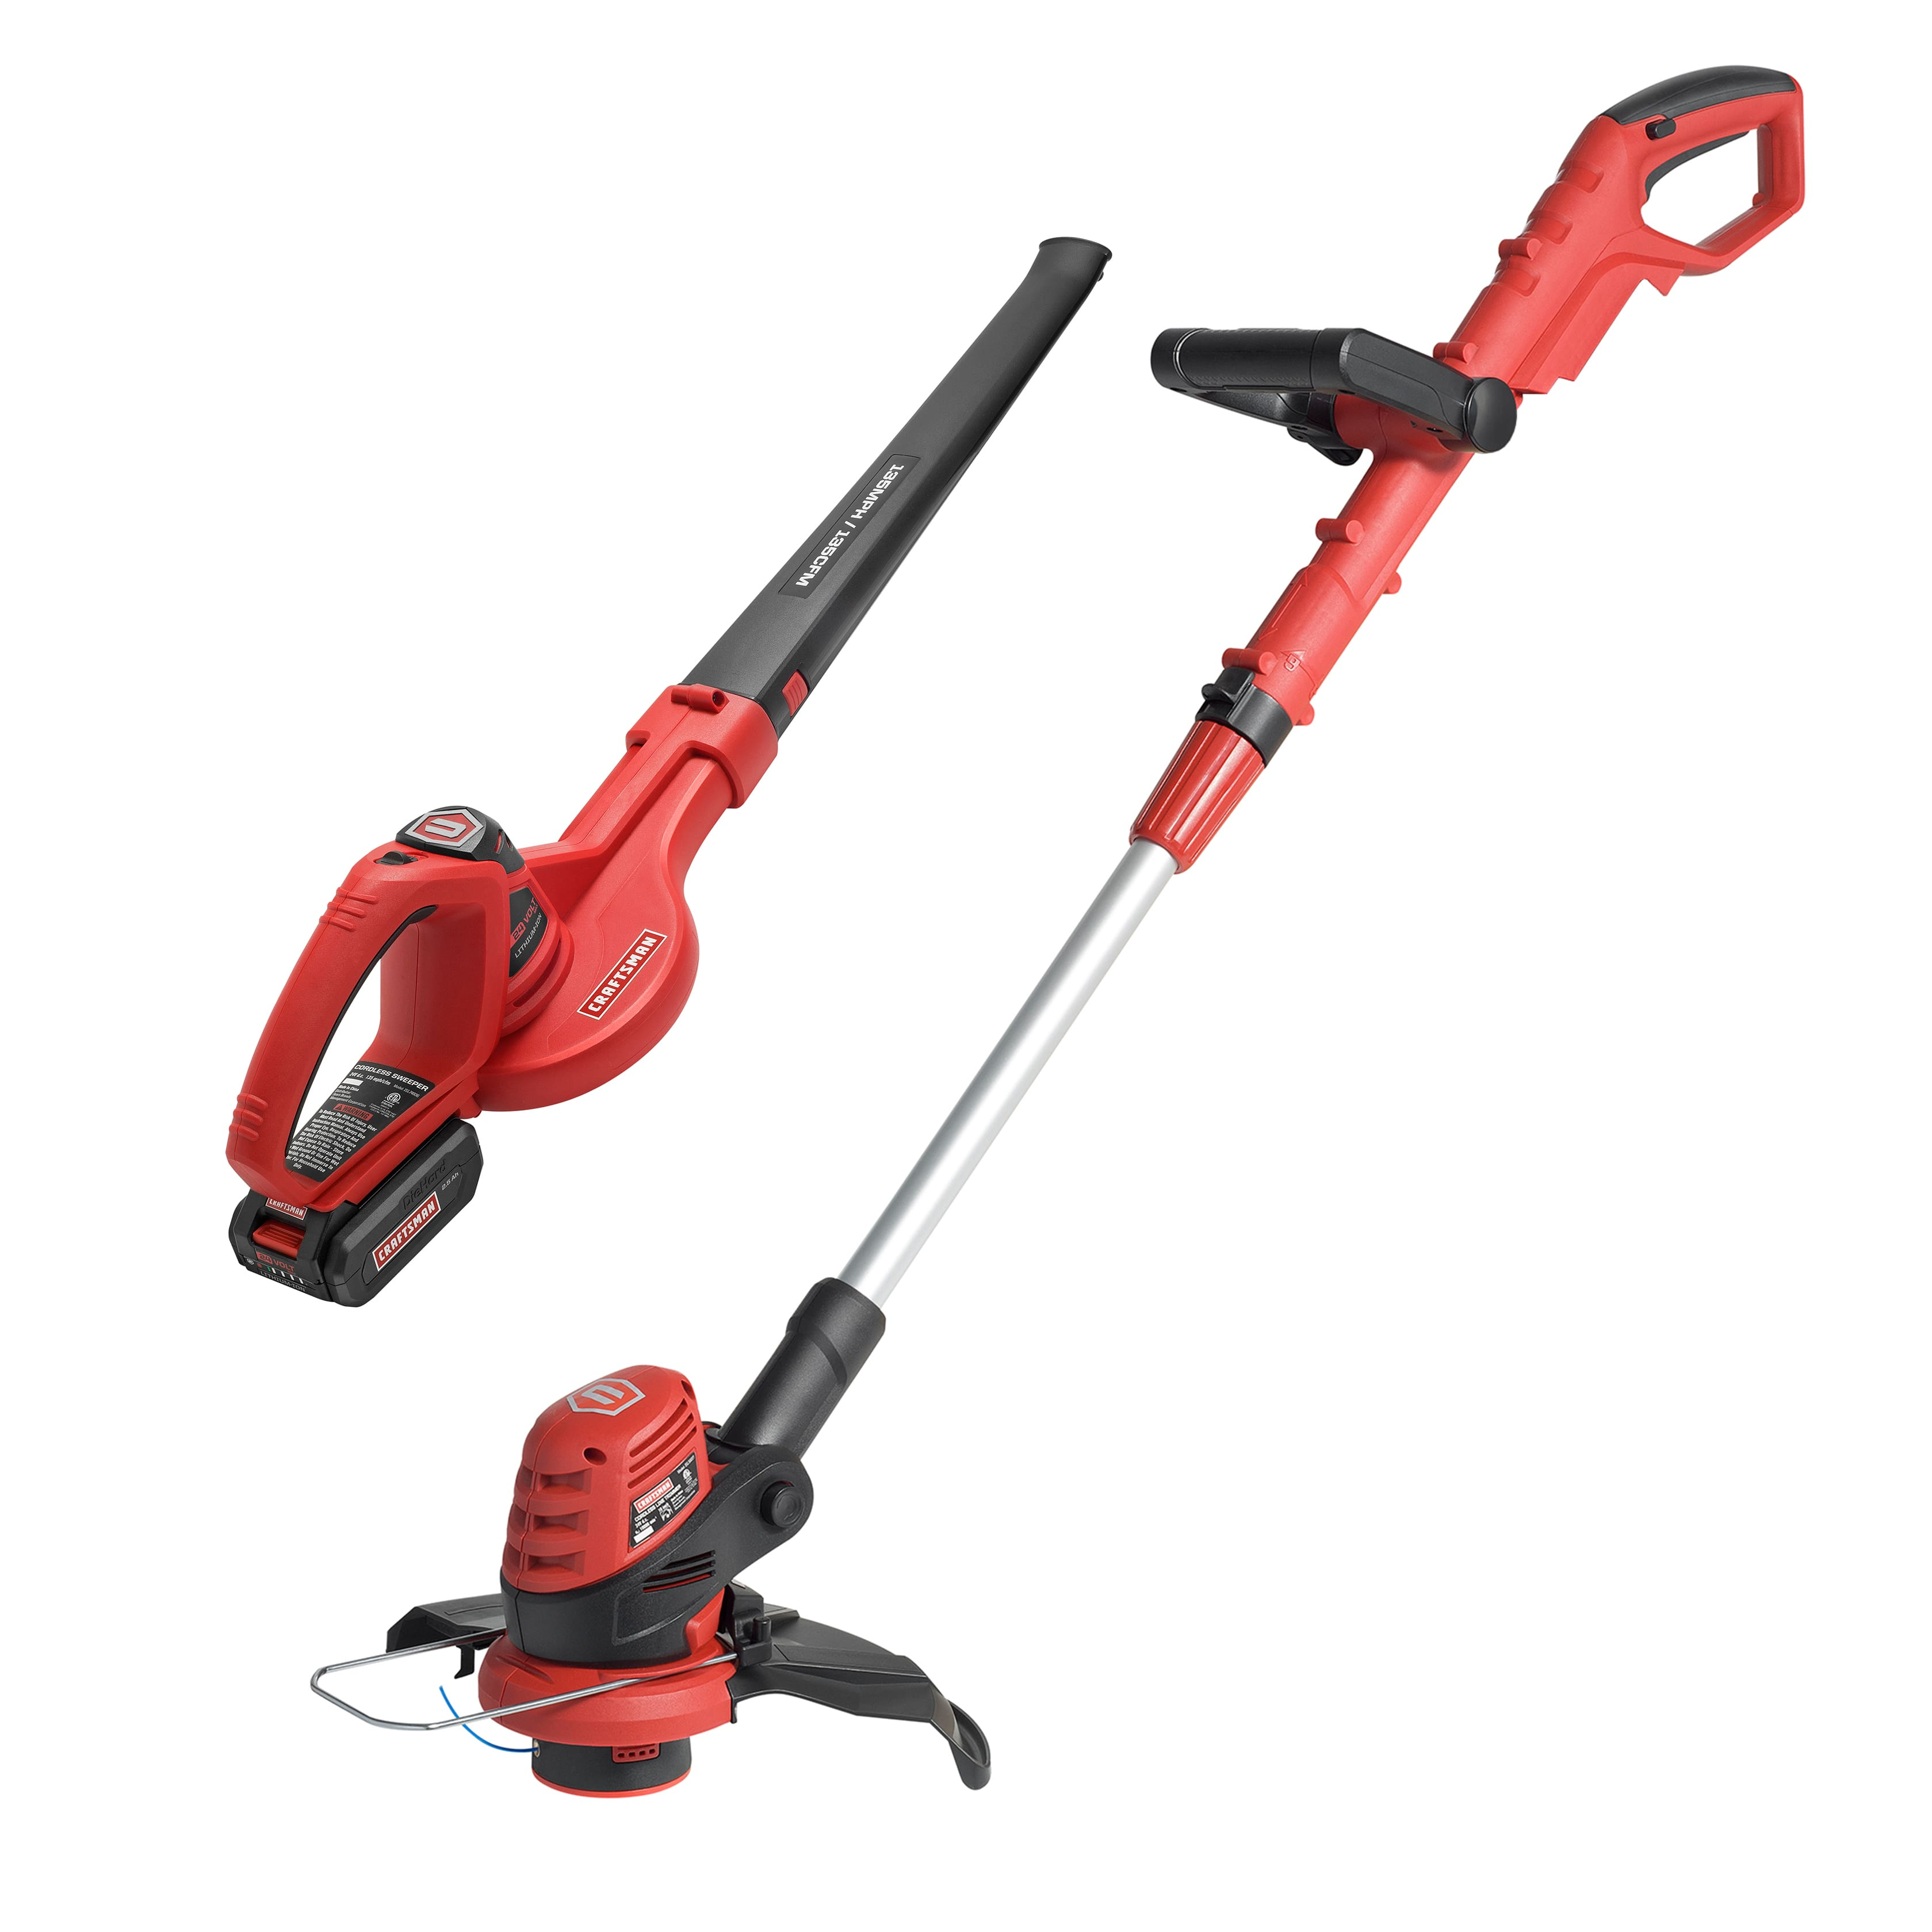 "Craftsman 24-Volt Max Lithium-Ion Cordless 10"" Line Trimmer & Sweeper Combo Kit $69.99 + Free Shipping"